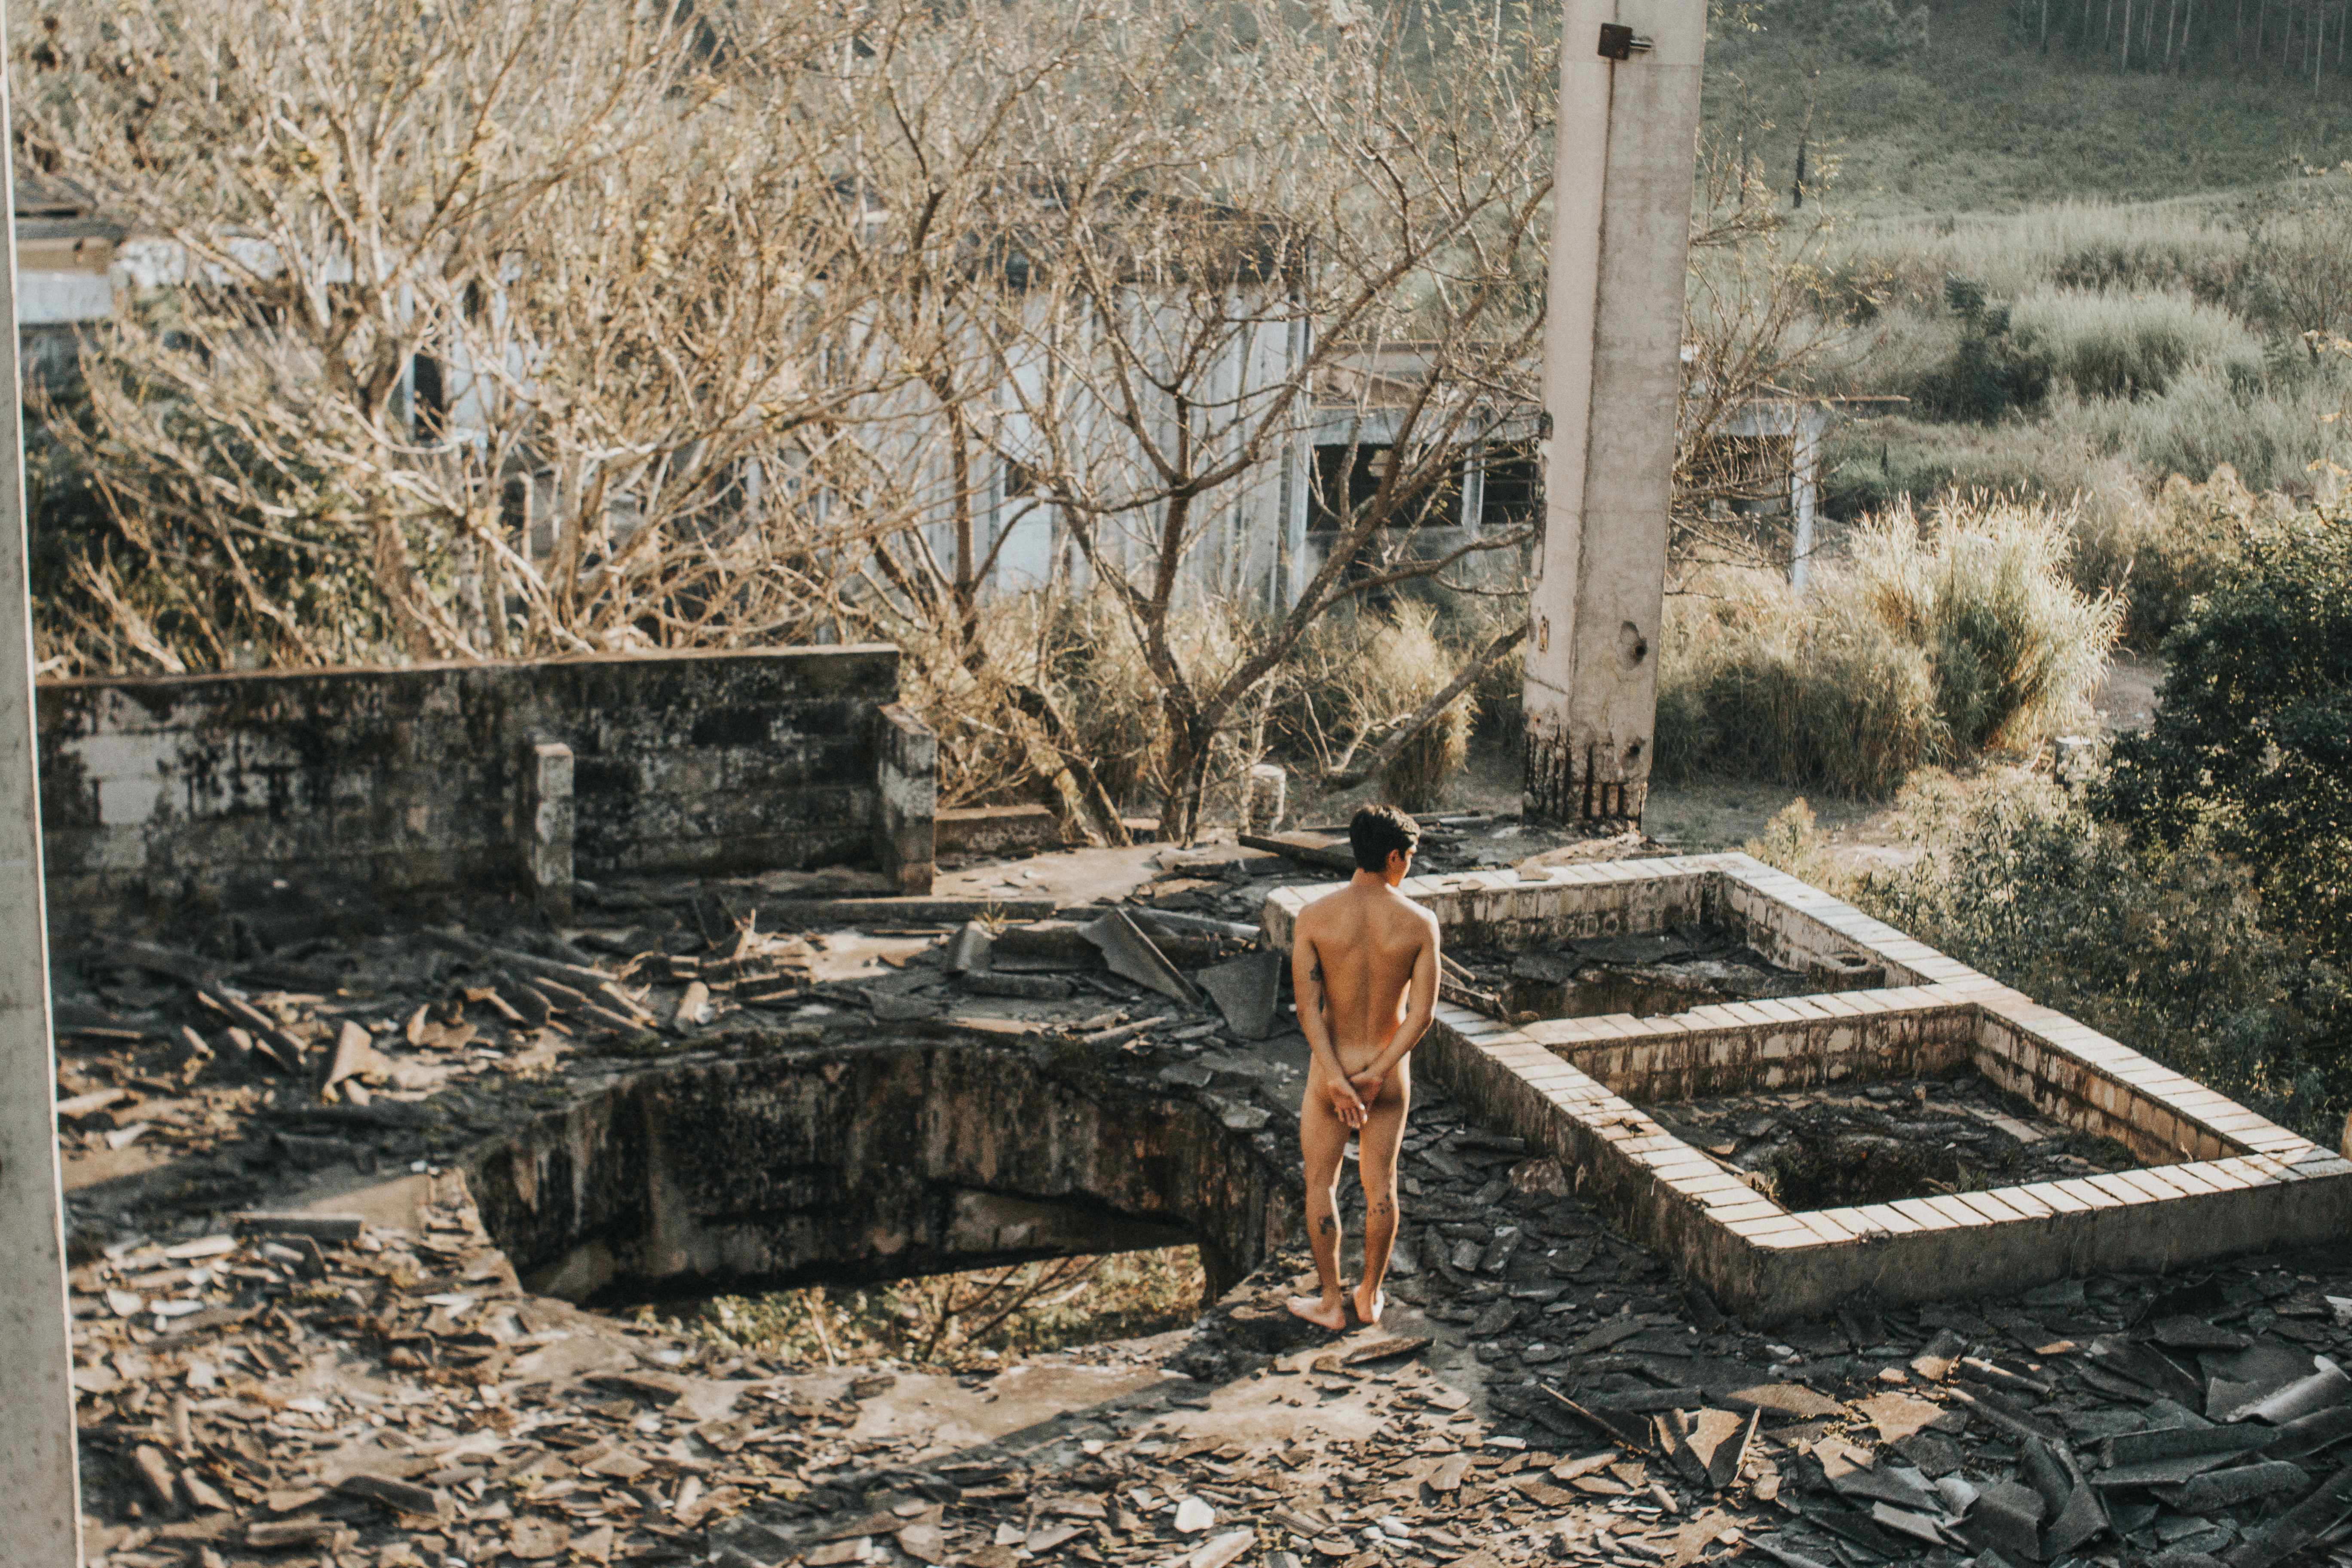 Naked Man In An Abandoned Building